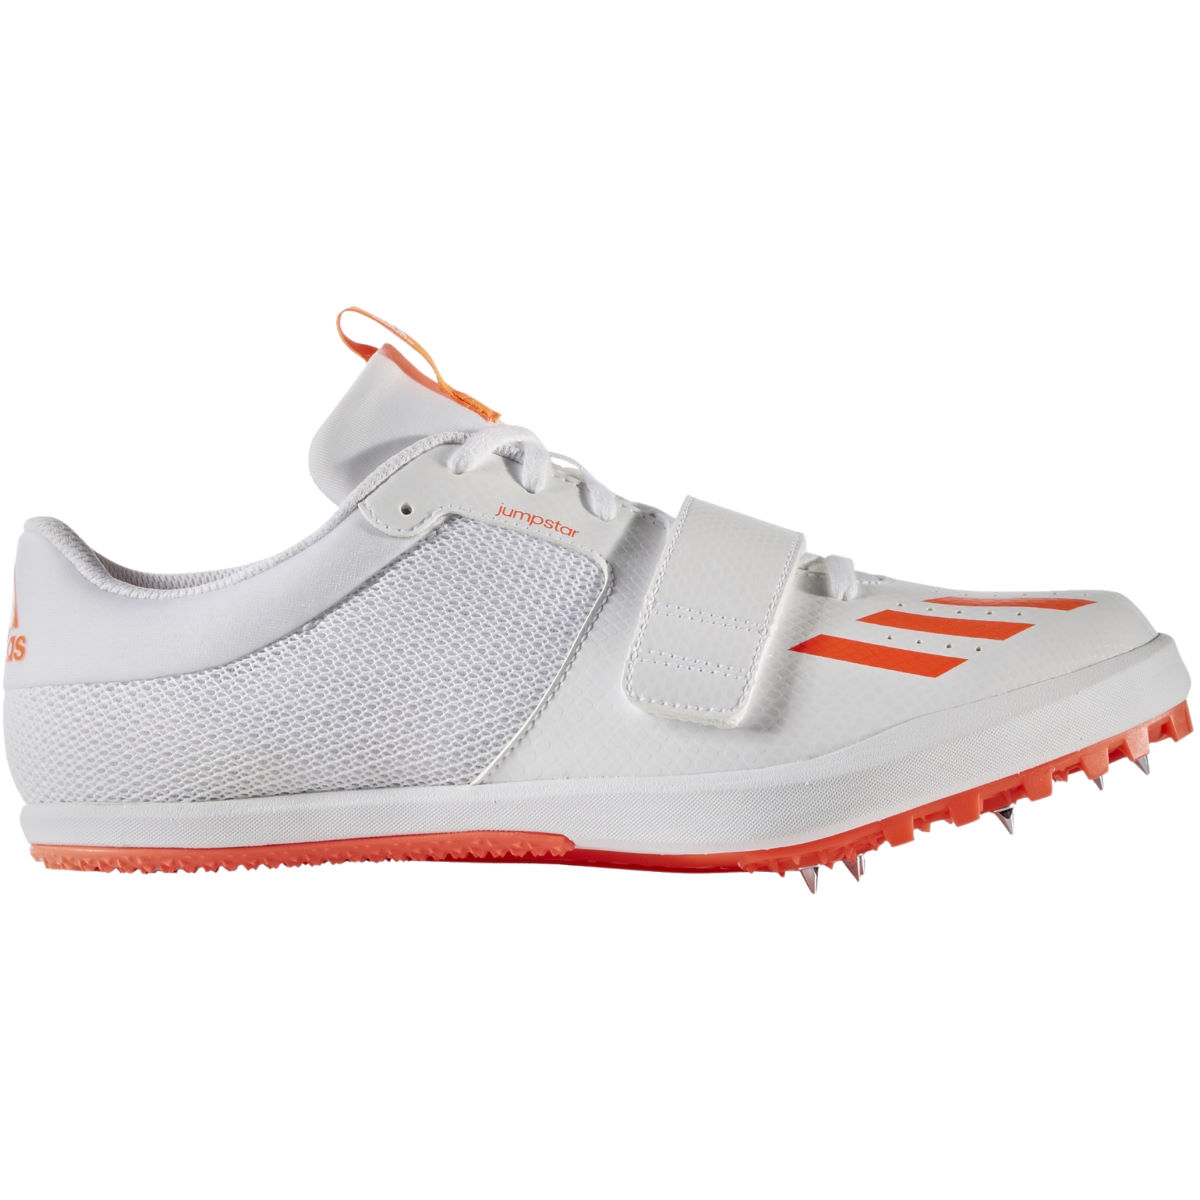 Chaussures adidas Jumpstar - 13,5 UK Blanc/Rouge